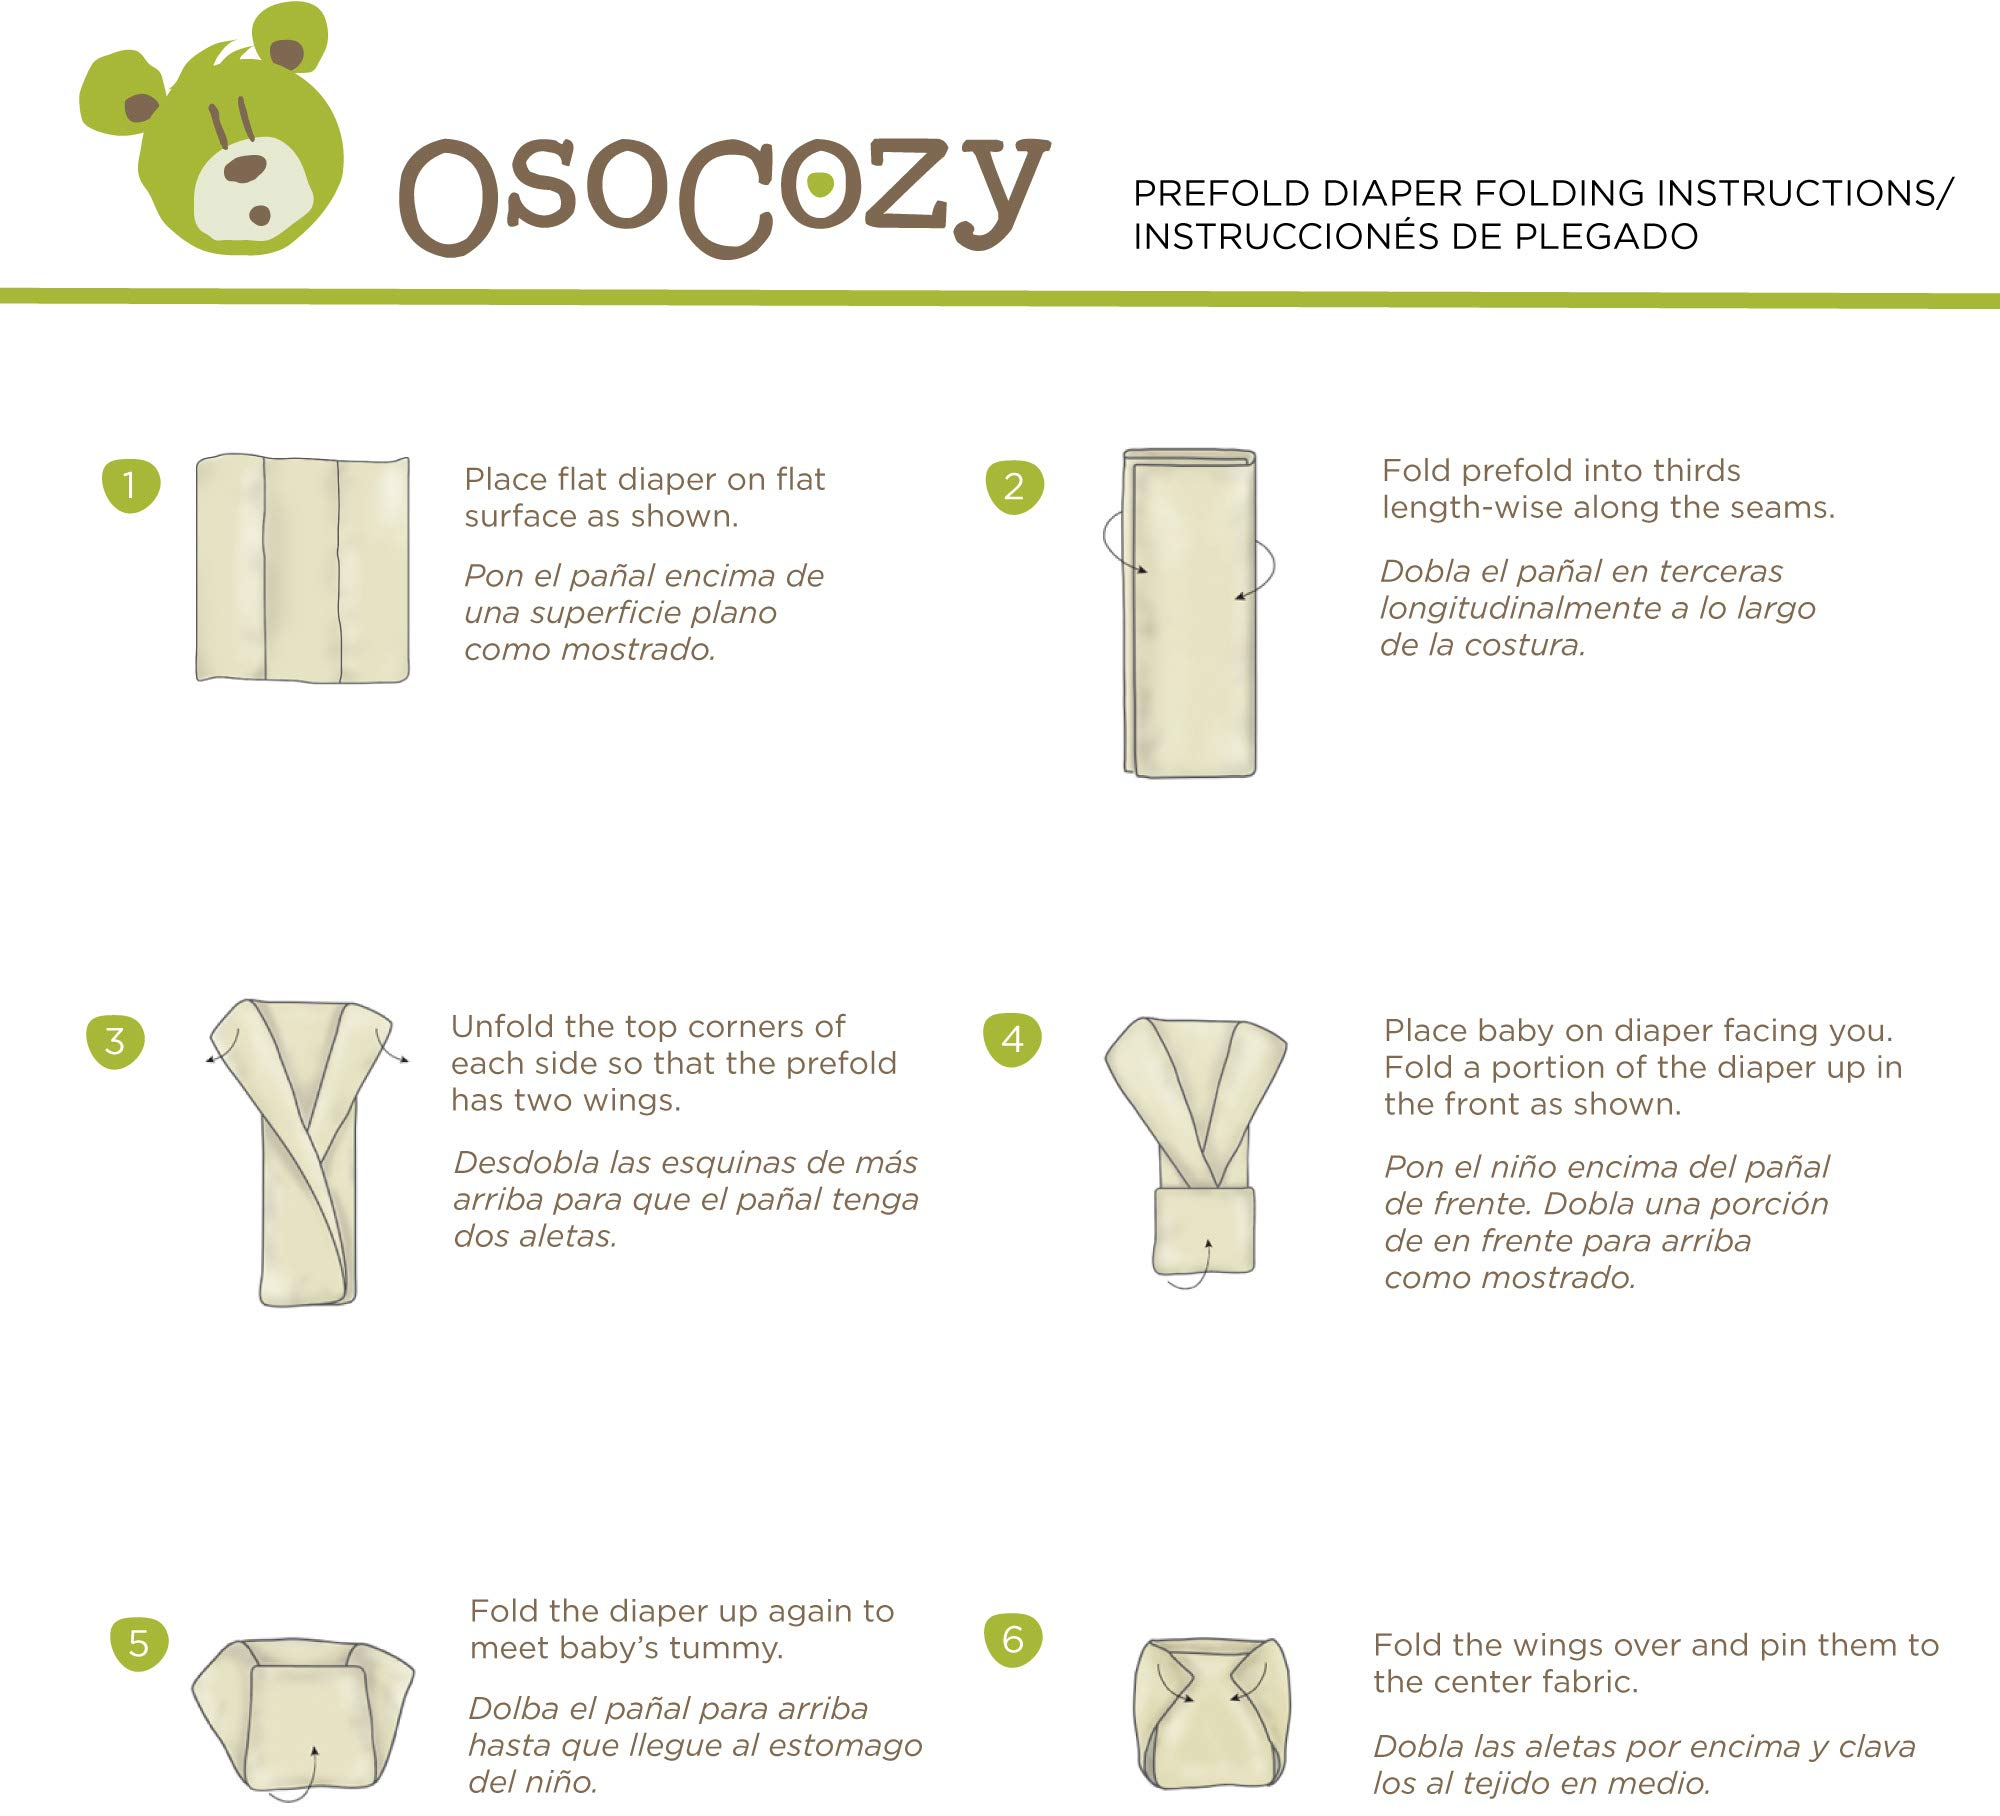 OsoCozy Unbleached Prefold Cloth Diapers – 12 Count, Premium - 4x8x4 (15-30 lbs)